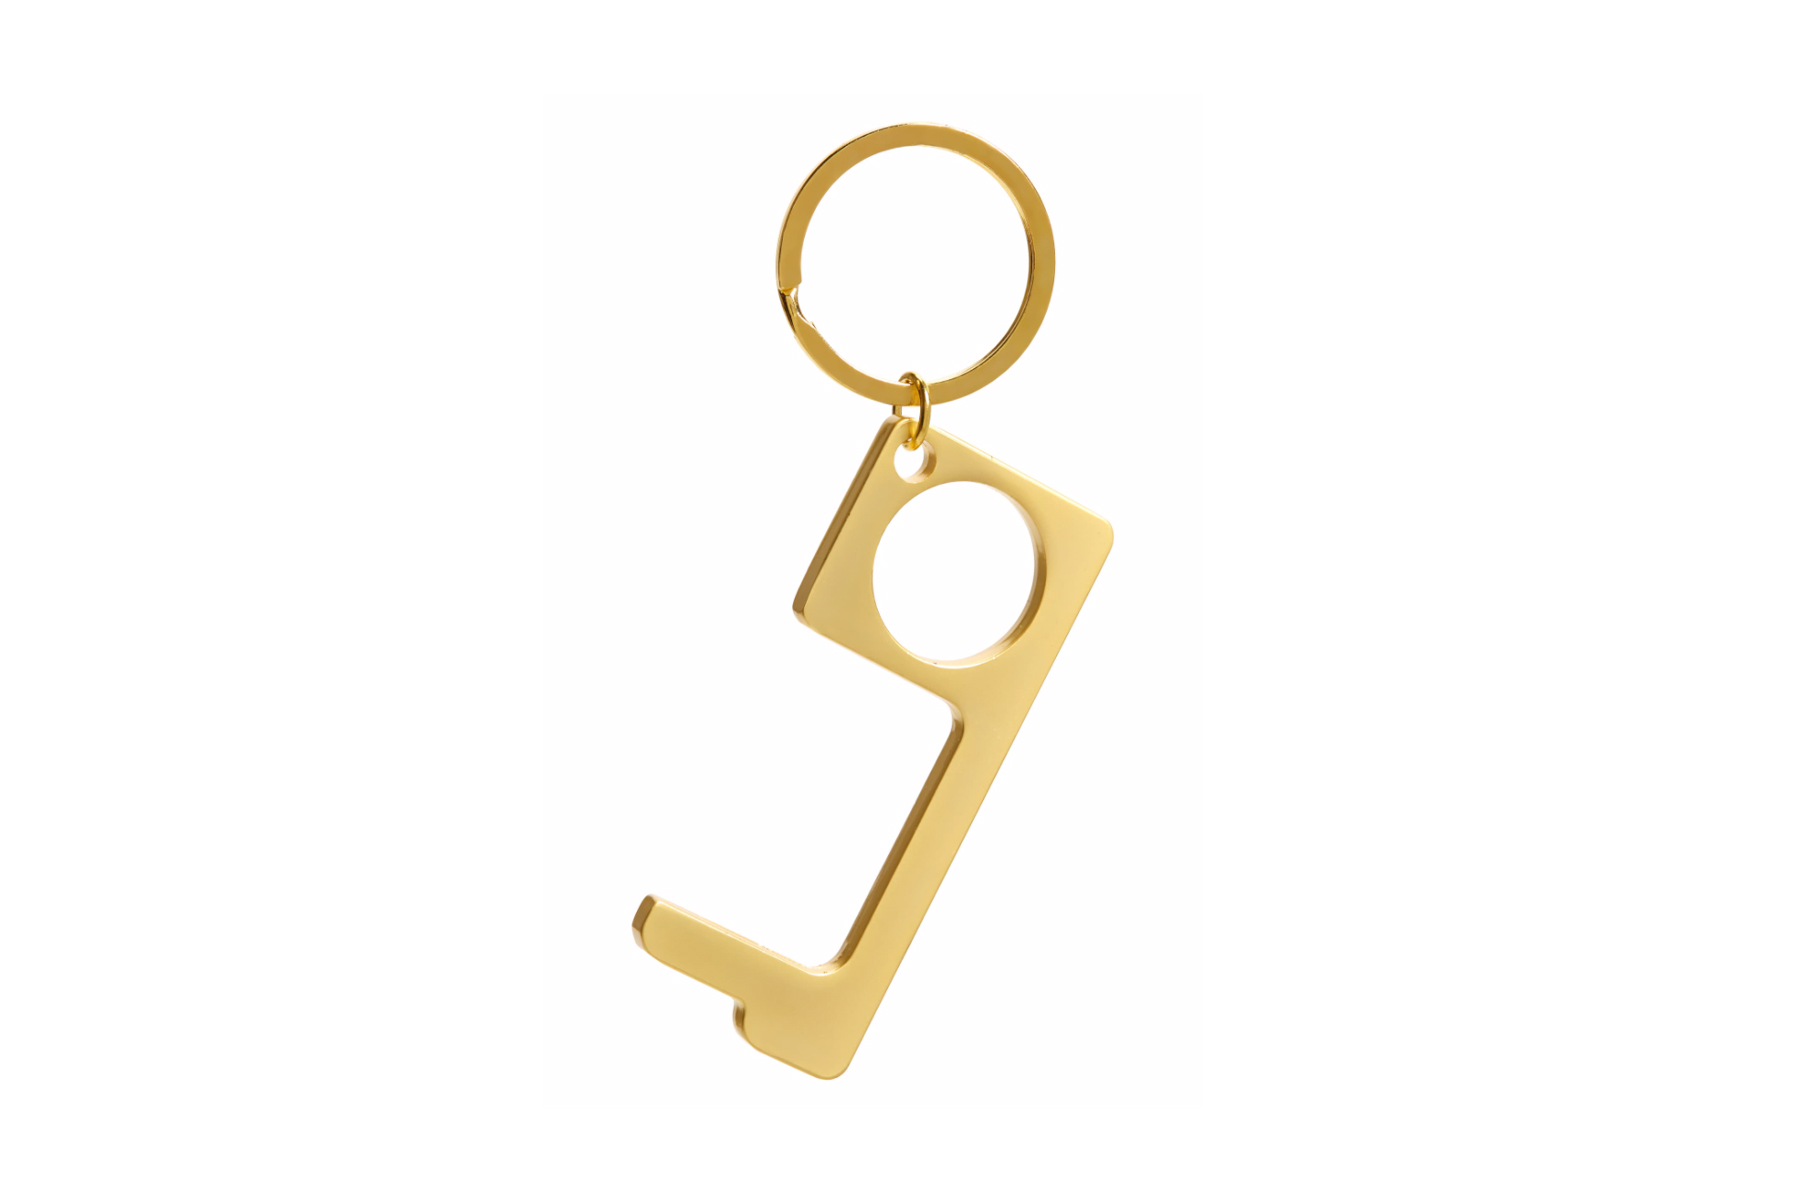 Protective keychain grabber in gold